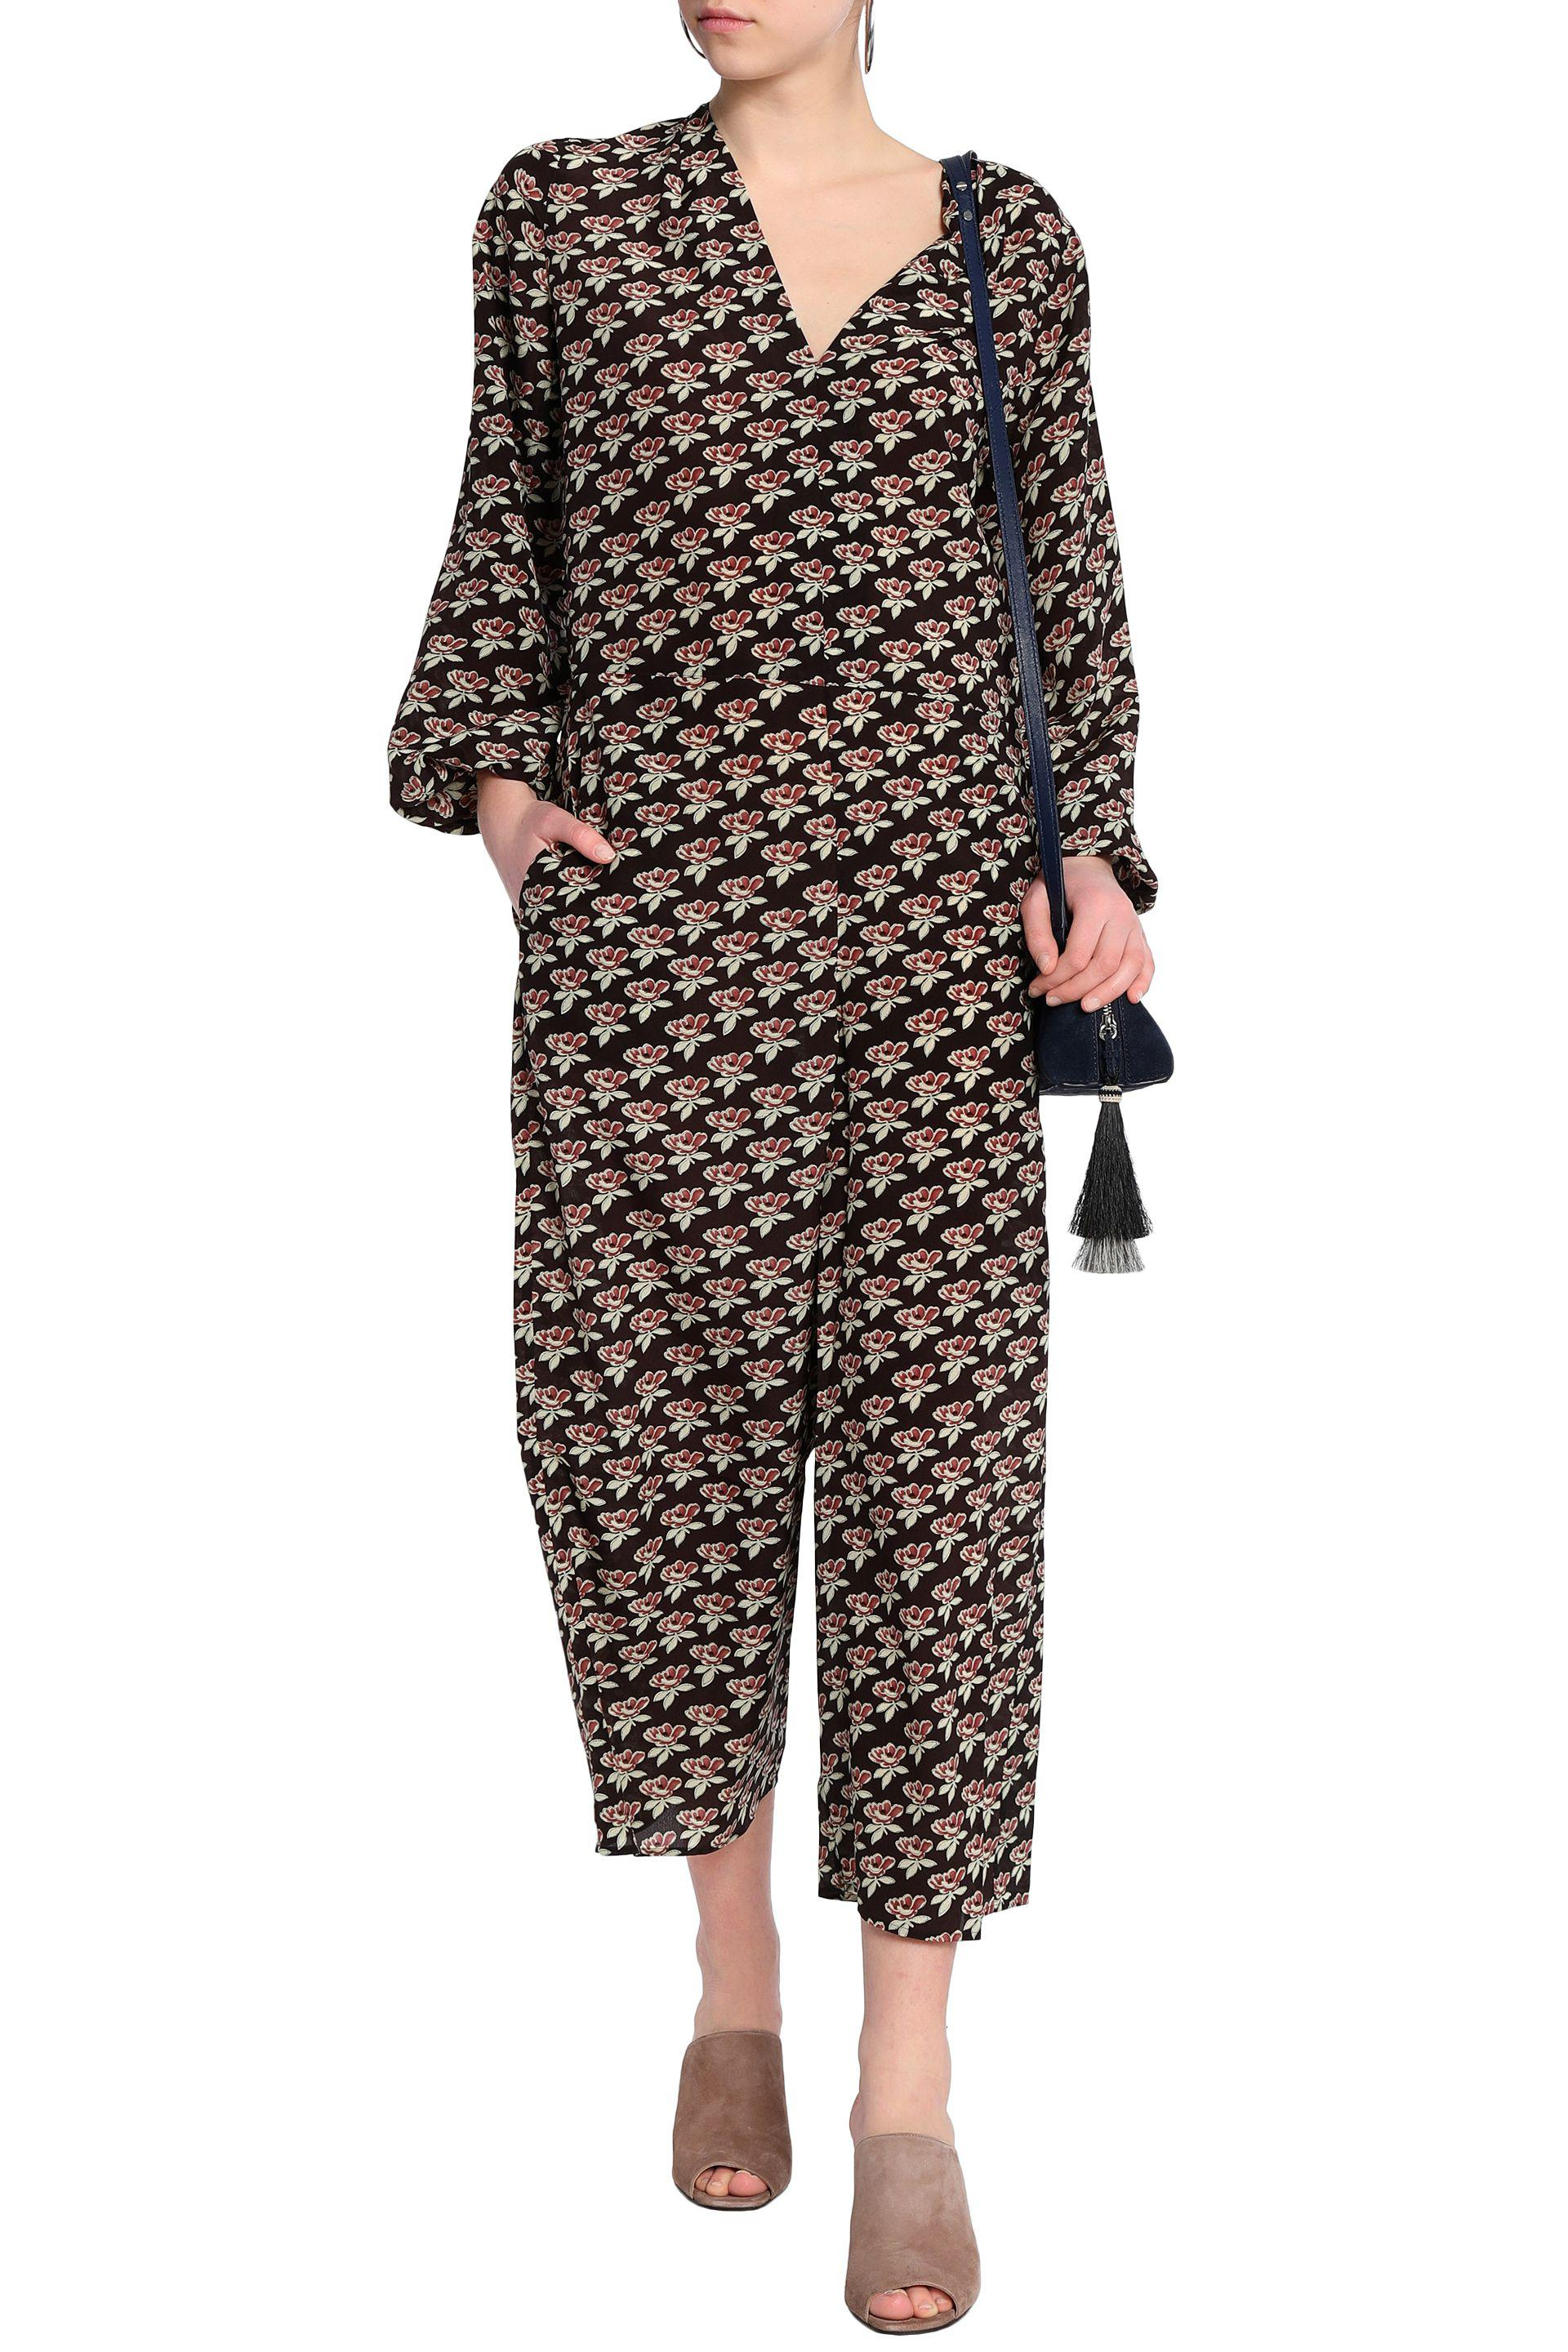 M.i.h Jeans Cropped Floral-print Silk Jumpsuit in Chocolate (Brown)